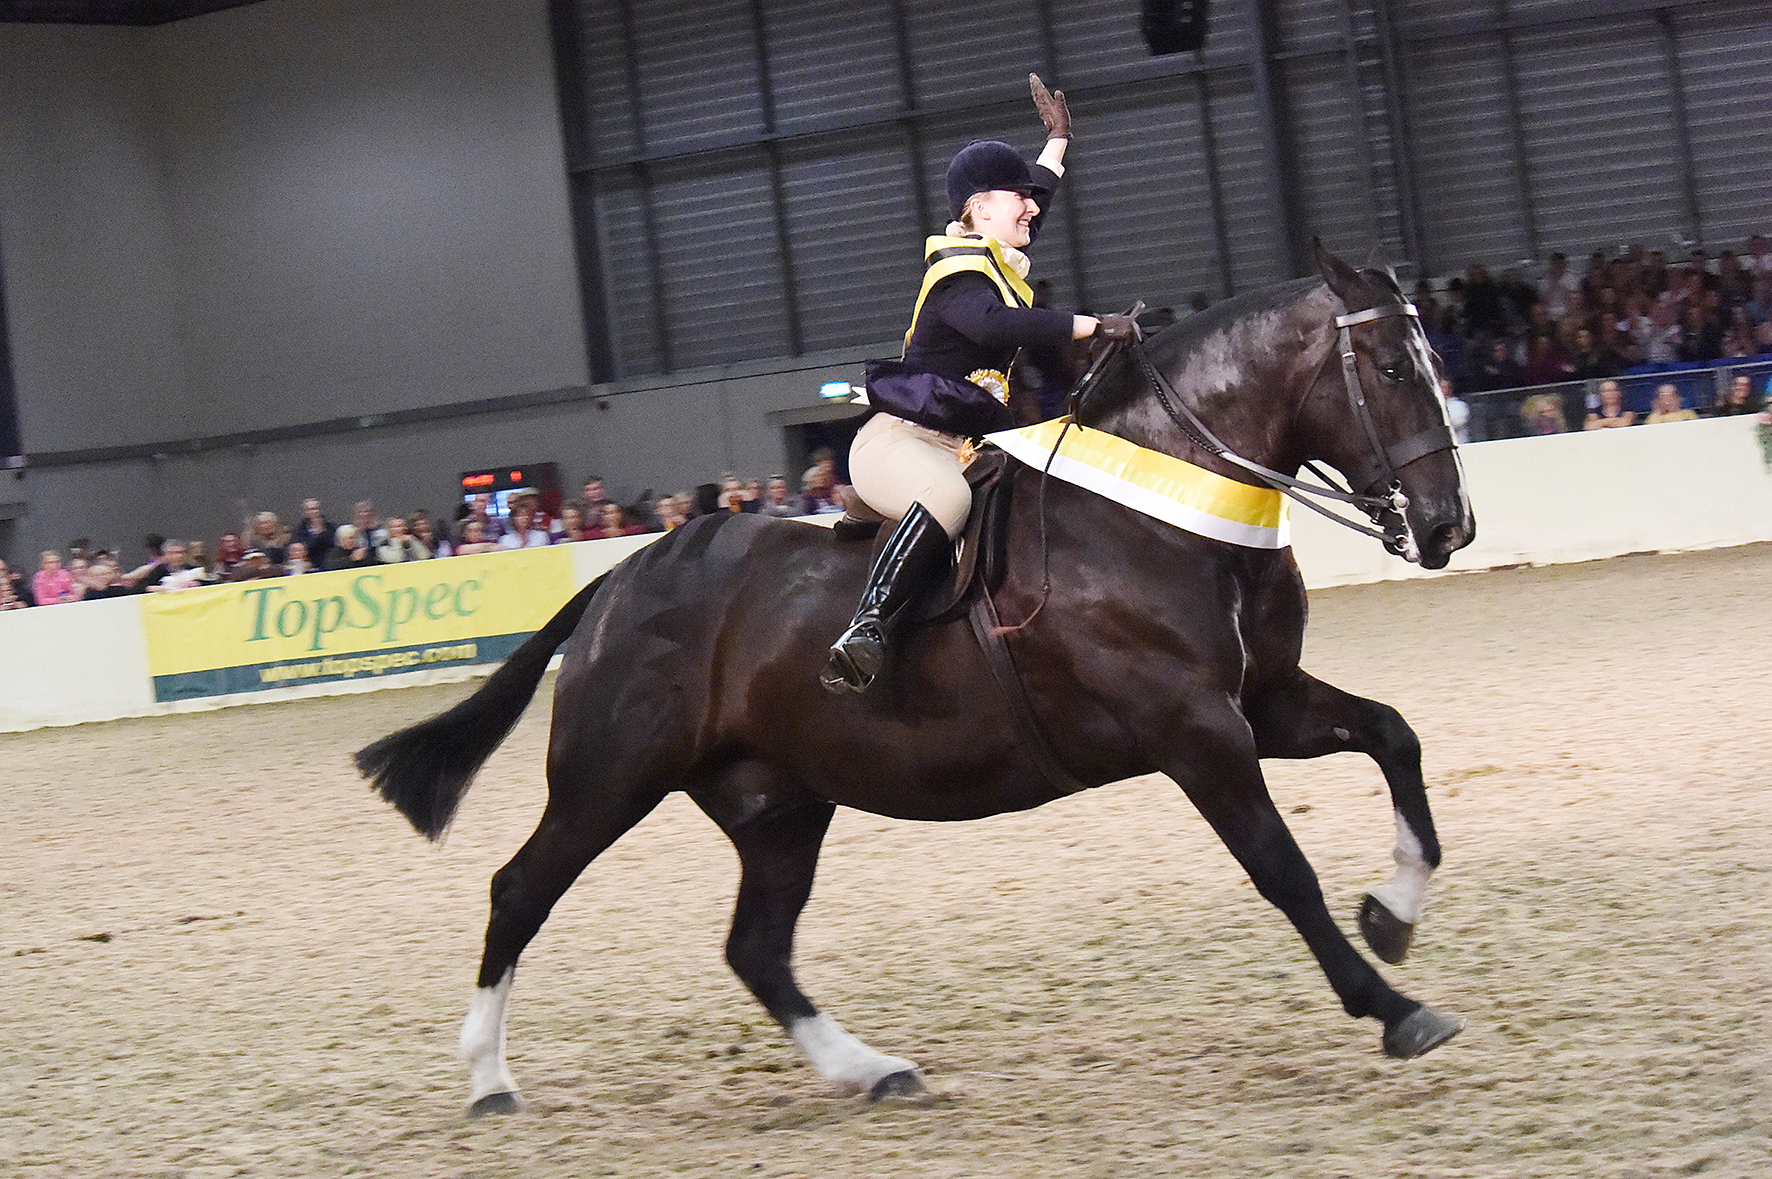 zoe 111 - Mr Belstaff is Champion of Champions at Equifest